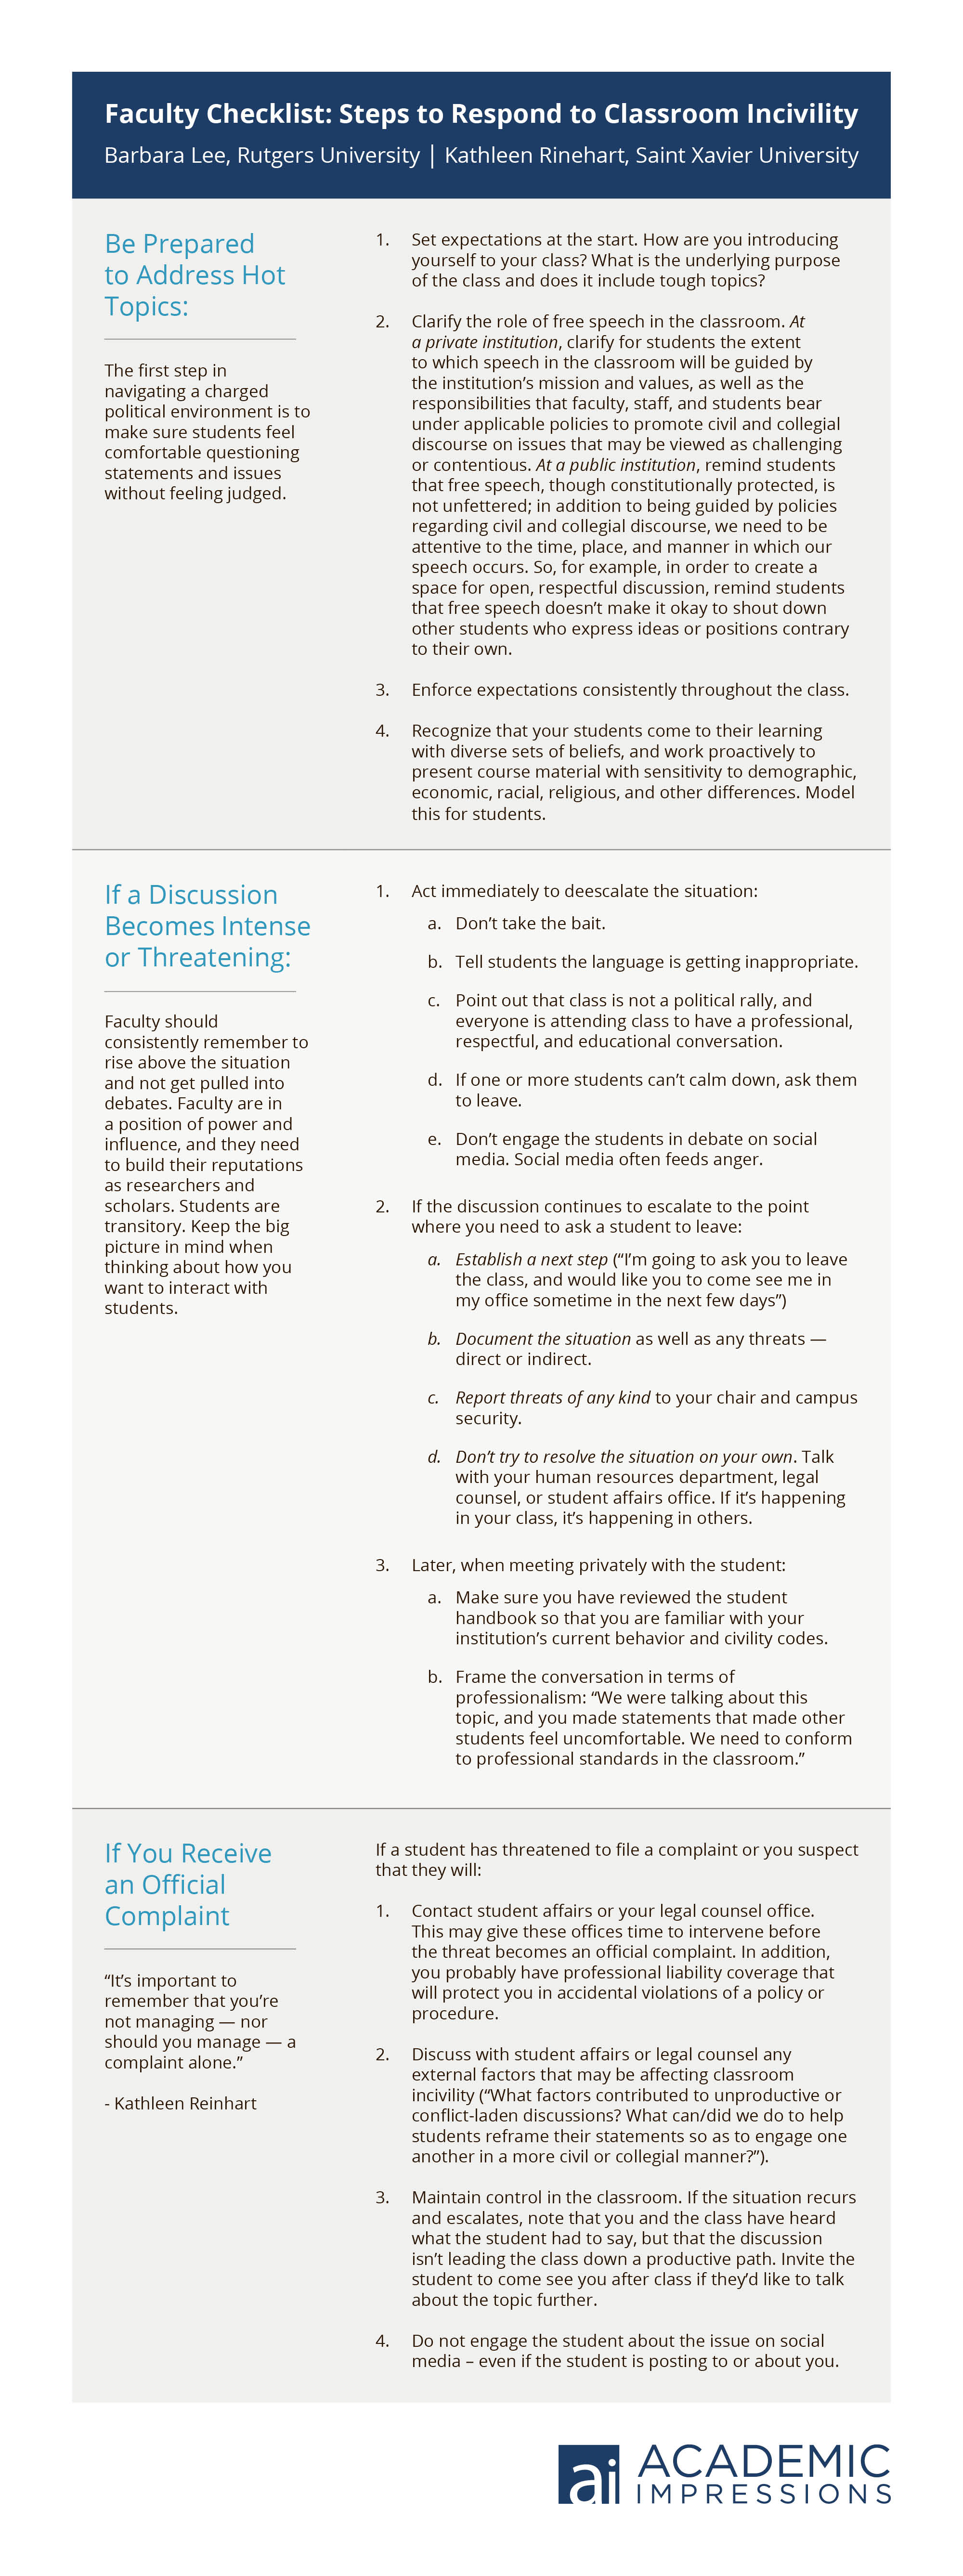 Checklist: Steps to Respond to Classroom Incivility